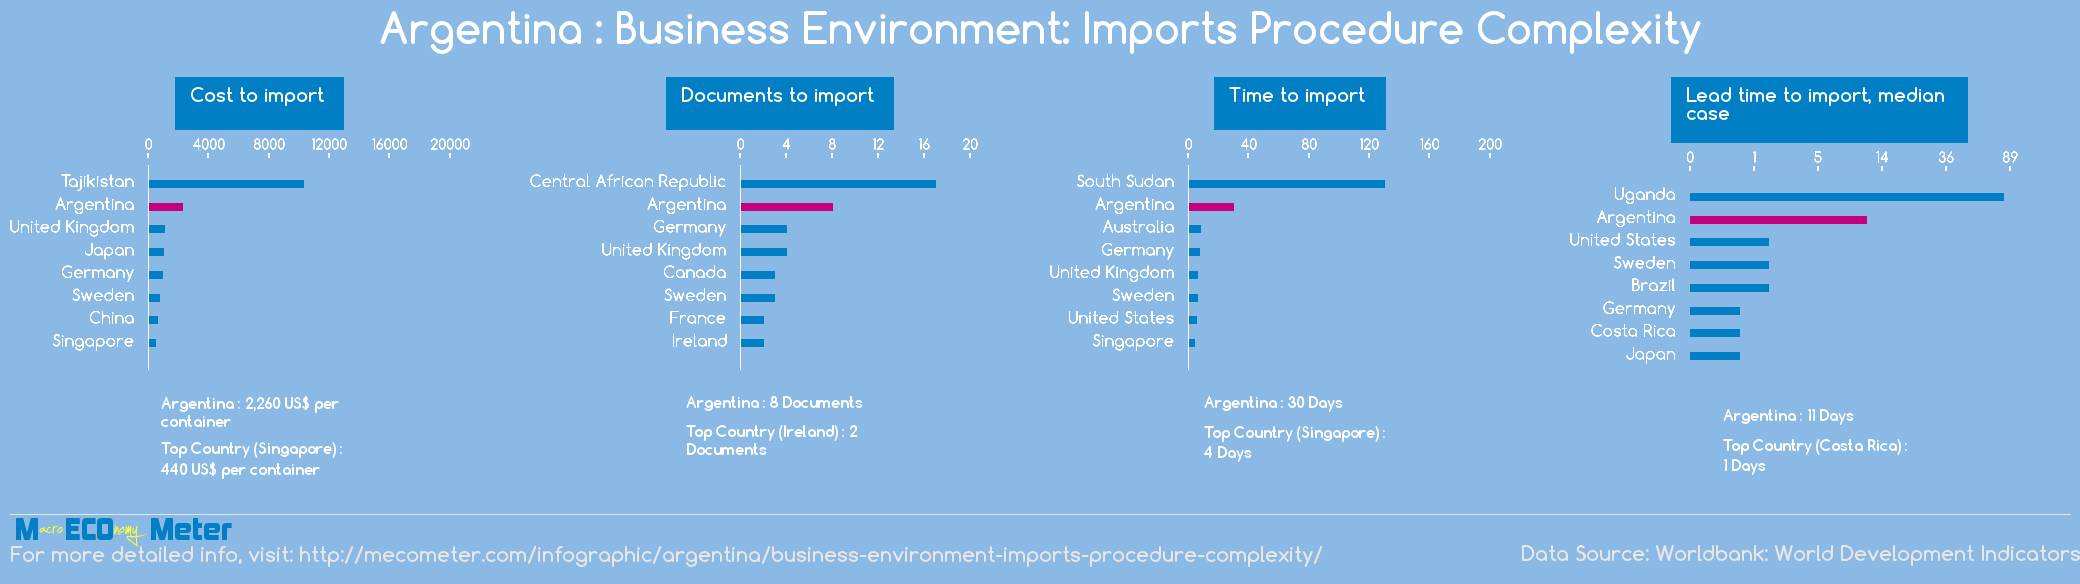 Argentina : Business Environment: Imports Procedure Complexity